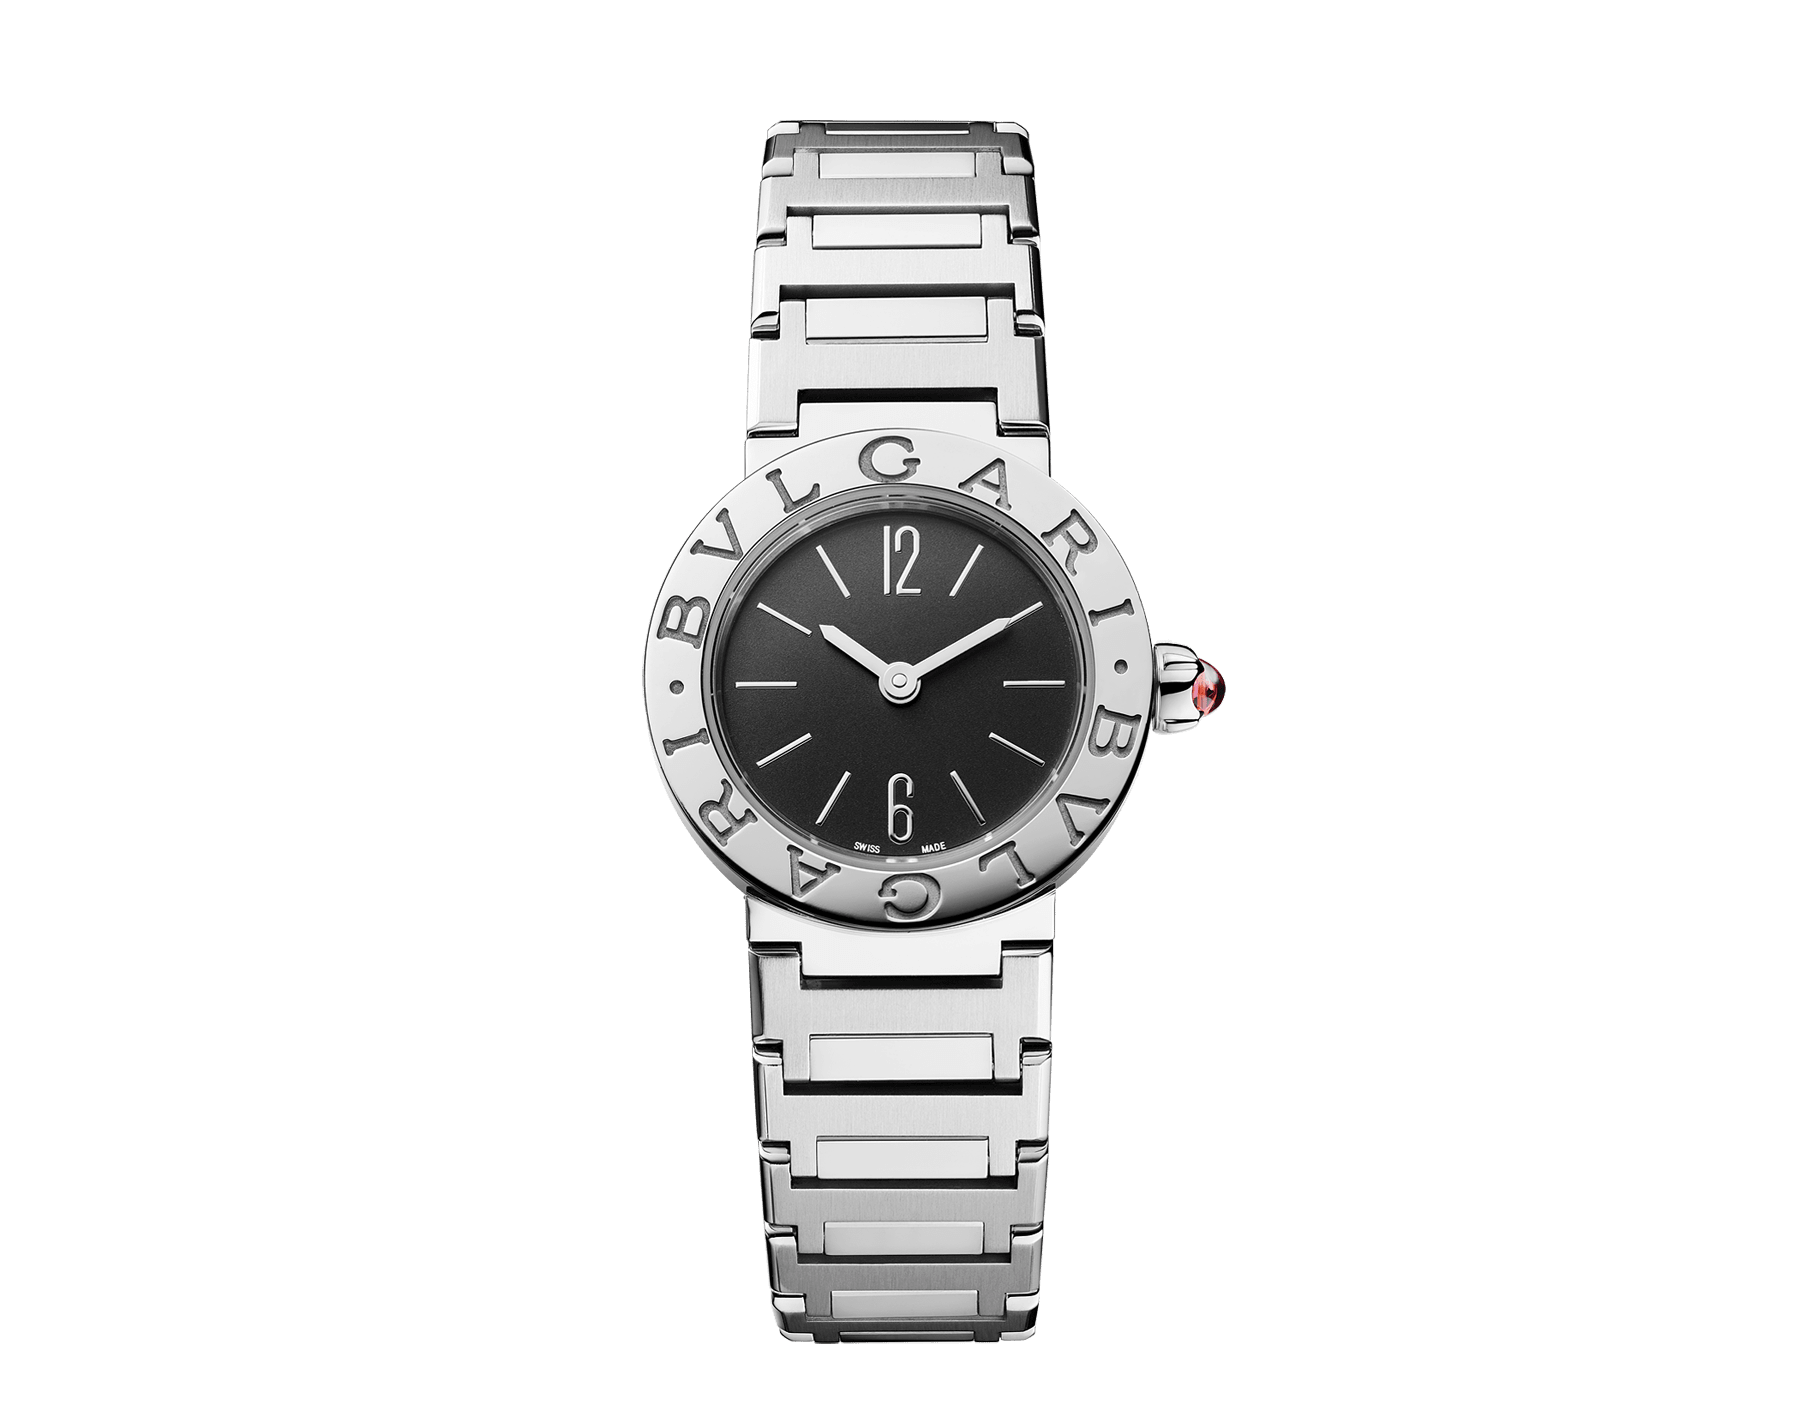 BVLGARI BVLGARI LADY watch in stainless steel case and bracelet, stainless steel bezel engraved with double logo and black lacquered dial 102943 image 1